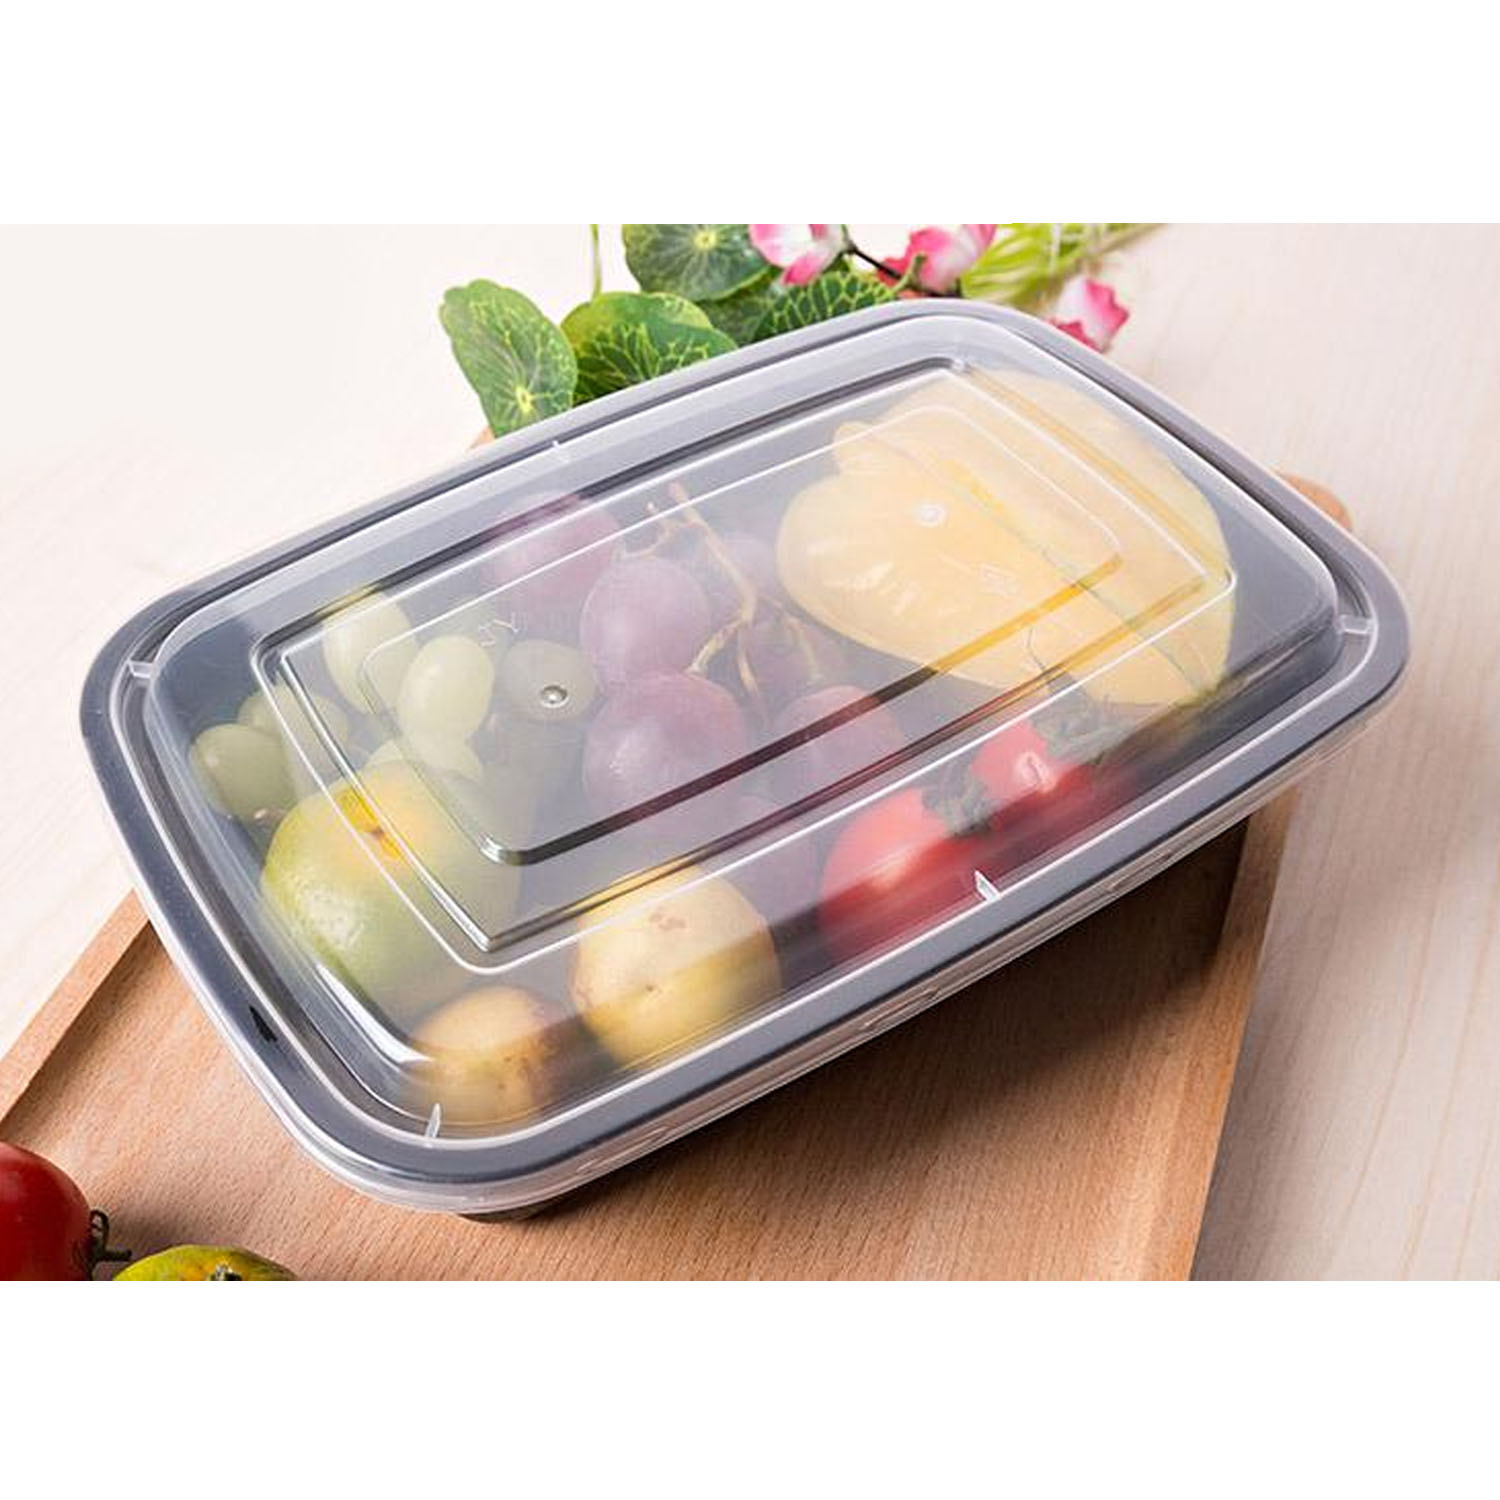 US $14 31  Behokic 10 Pack Disposable Plastic Food Storage Containers Lunch  Box Bento Box with Lid Freezer Dishwasher Safe-in Lunch Boxes from Home &